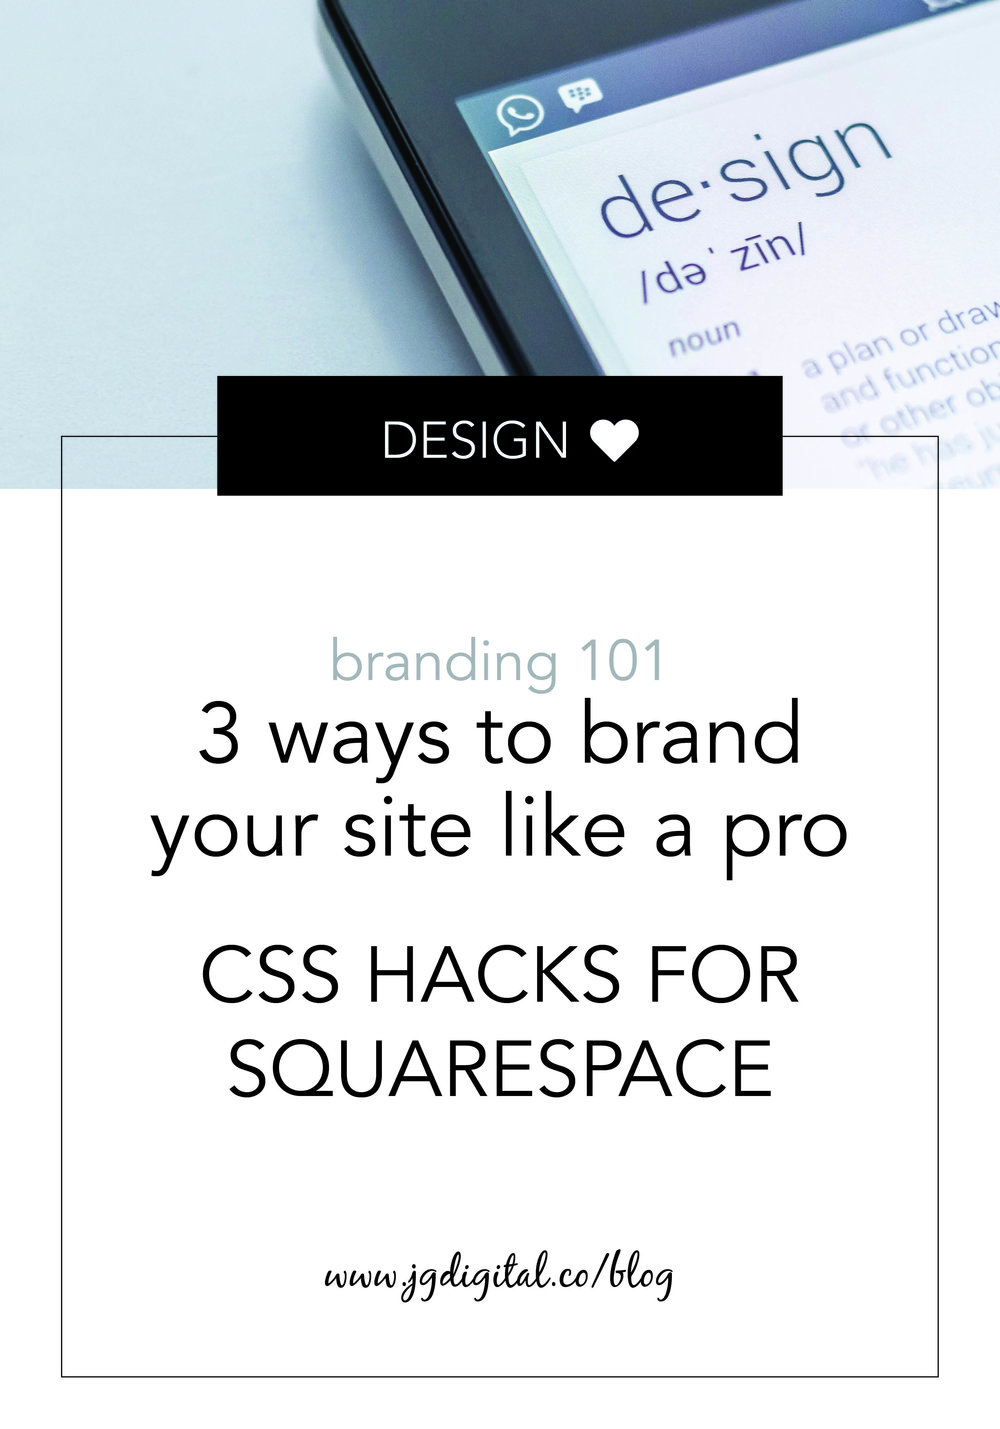 CSS Customization For Squarespace: 3 Ways to Brand Your Site Like a Pro, including Custom Index Page Background Color, Custom Contact Form, and Custom Navigation Button by jgdigital.co